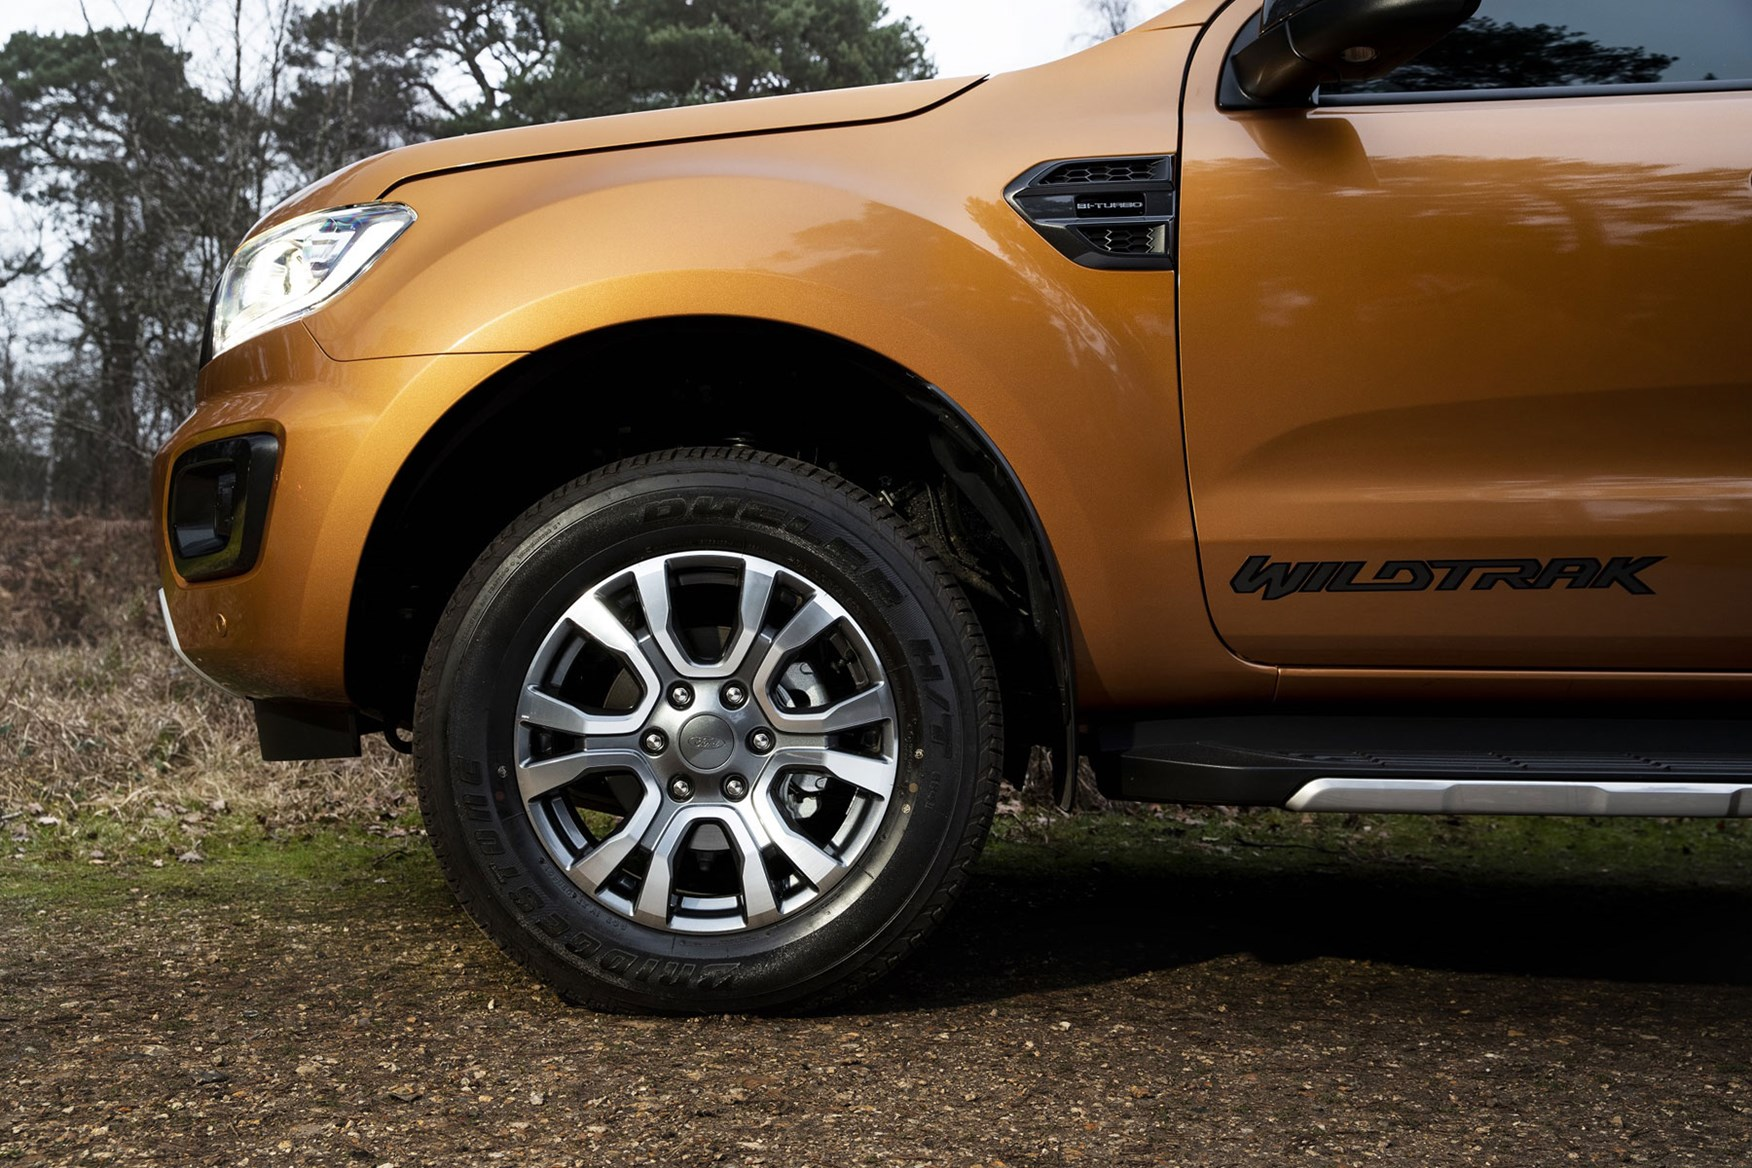 Ford Ranger review - 2019 facelift, close-up of front wheel and wing area, orange